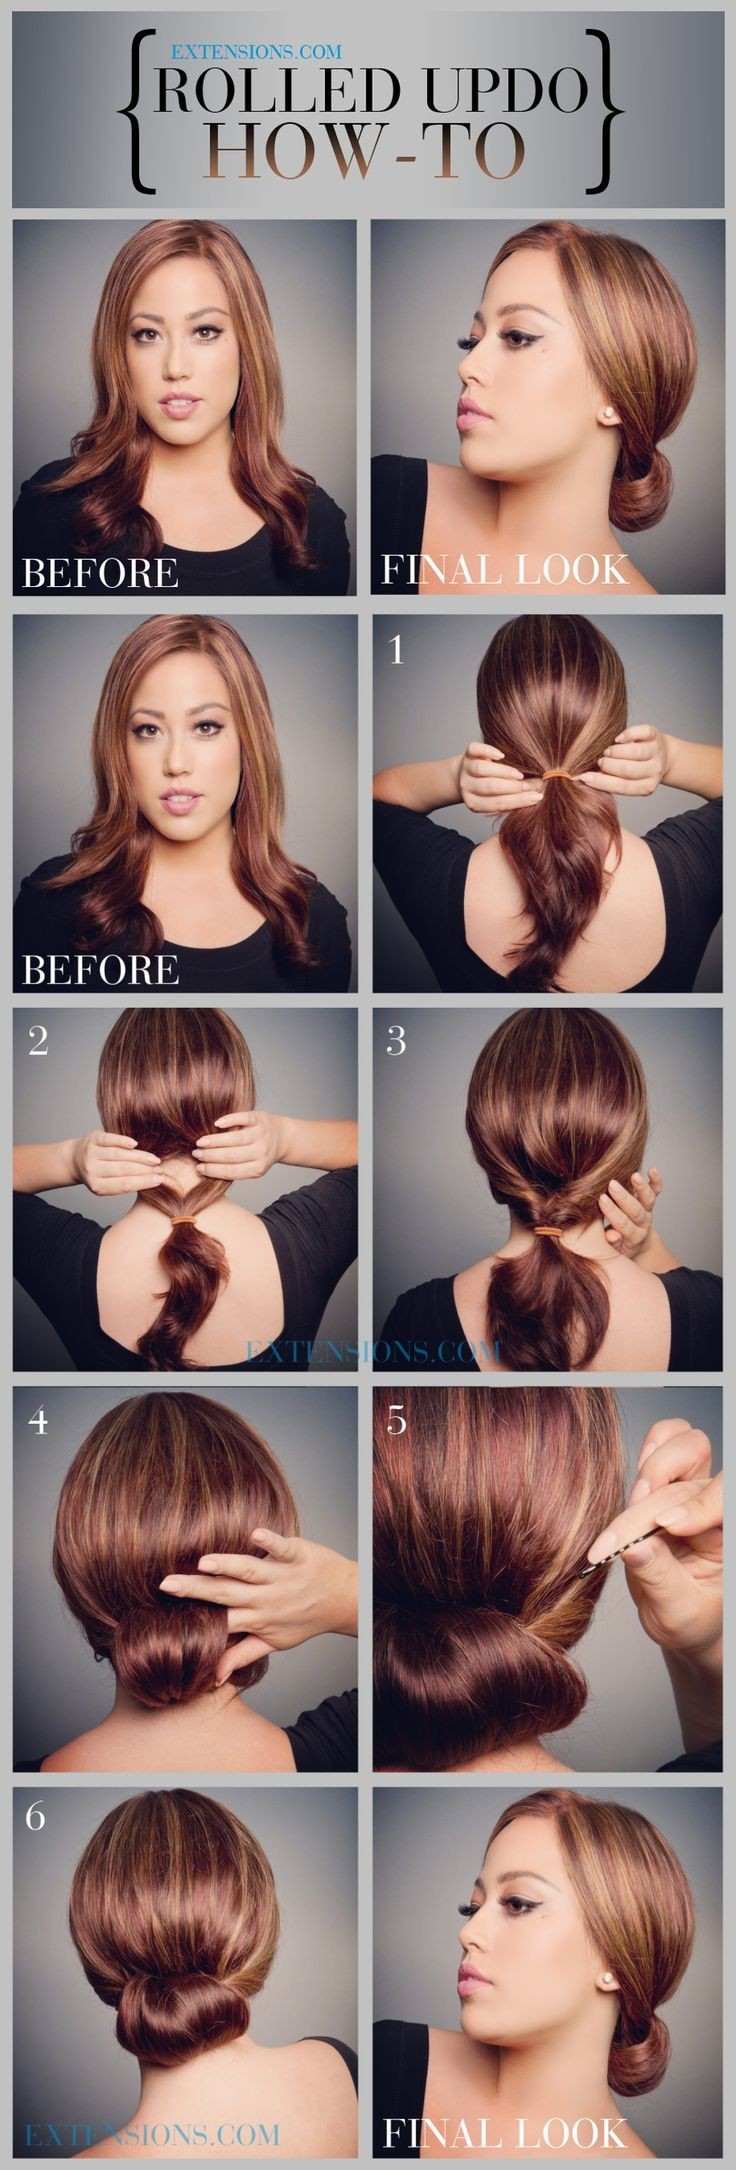 easy style for hair 12 trendy low bun updo hairstyles tutorials easy 6387